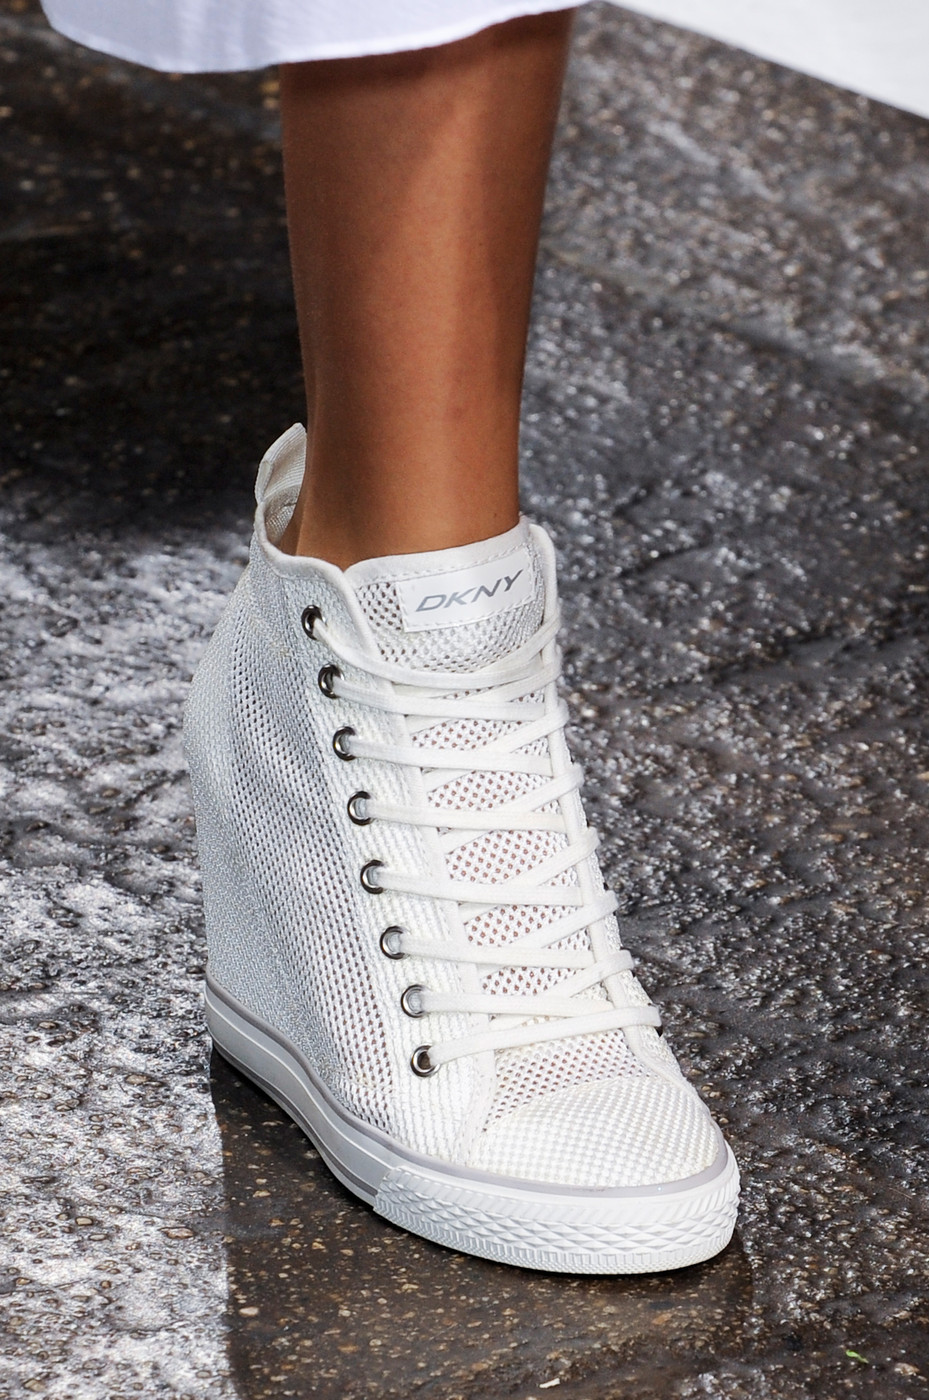 Dkny Spring 2013 Best Shoes Of Spring 2013 Stylebistro